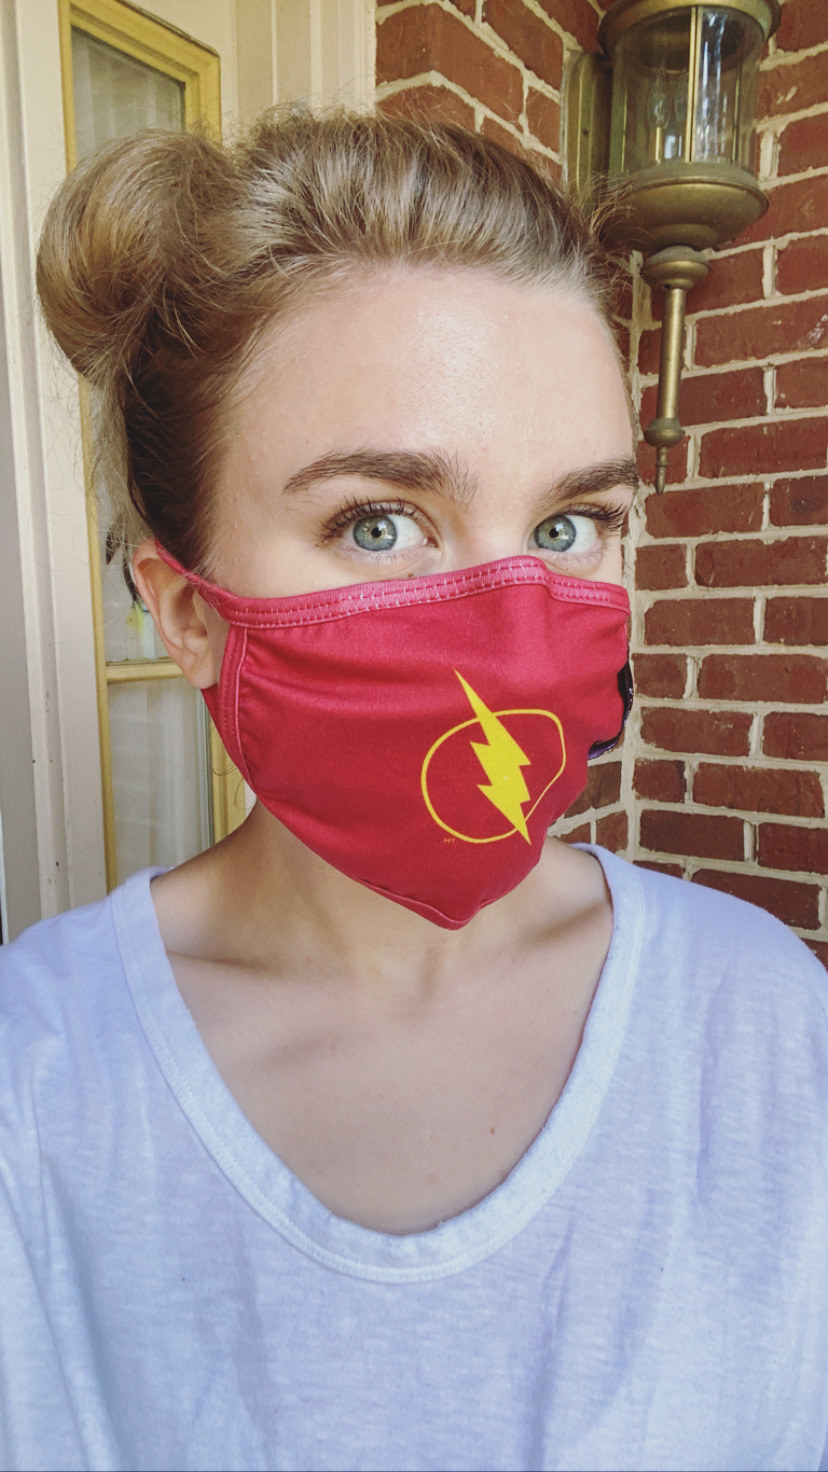 A BuzzFeed editor in a red mask with The Flash logo